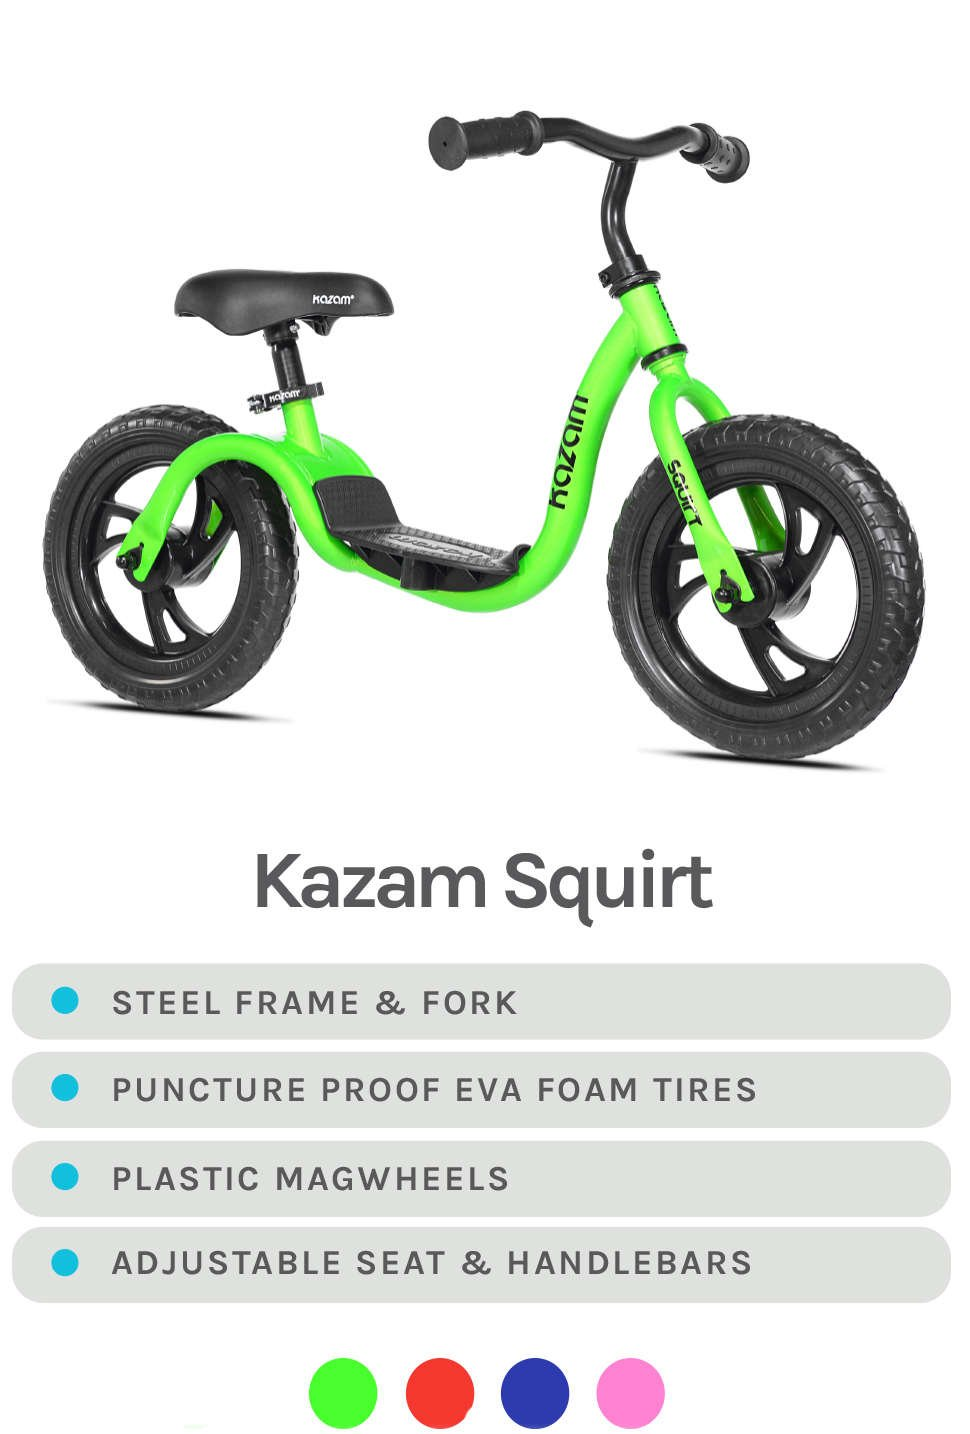 Lime Green Kazam Squirt Featured - Specs- Steel Frame & Fork, Puncture Proof EVA Foam Tires, Plastic Mag wheels, and Adjustable Seat & Handlebars - Available Colors Lime Green, Red, Blue, and Light Pink